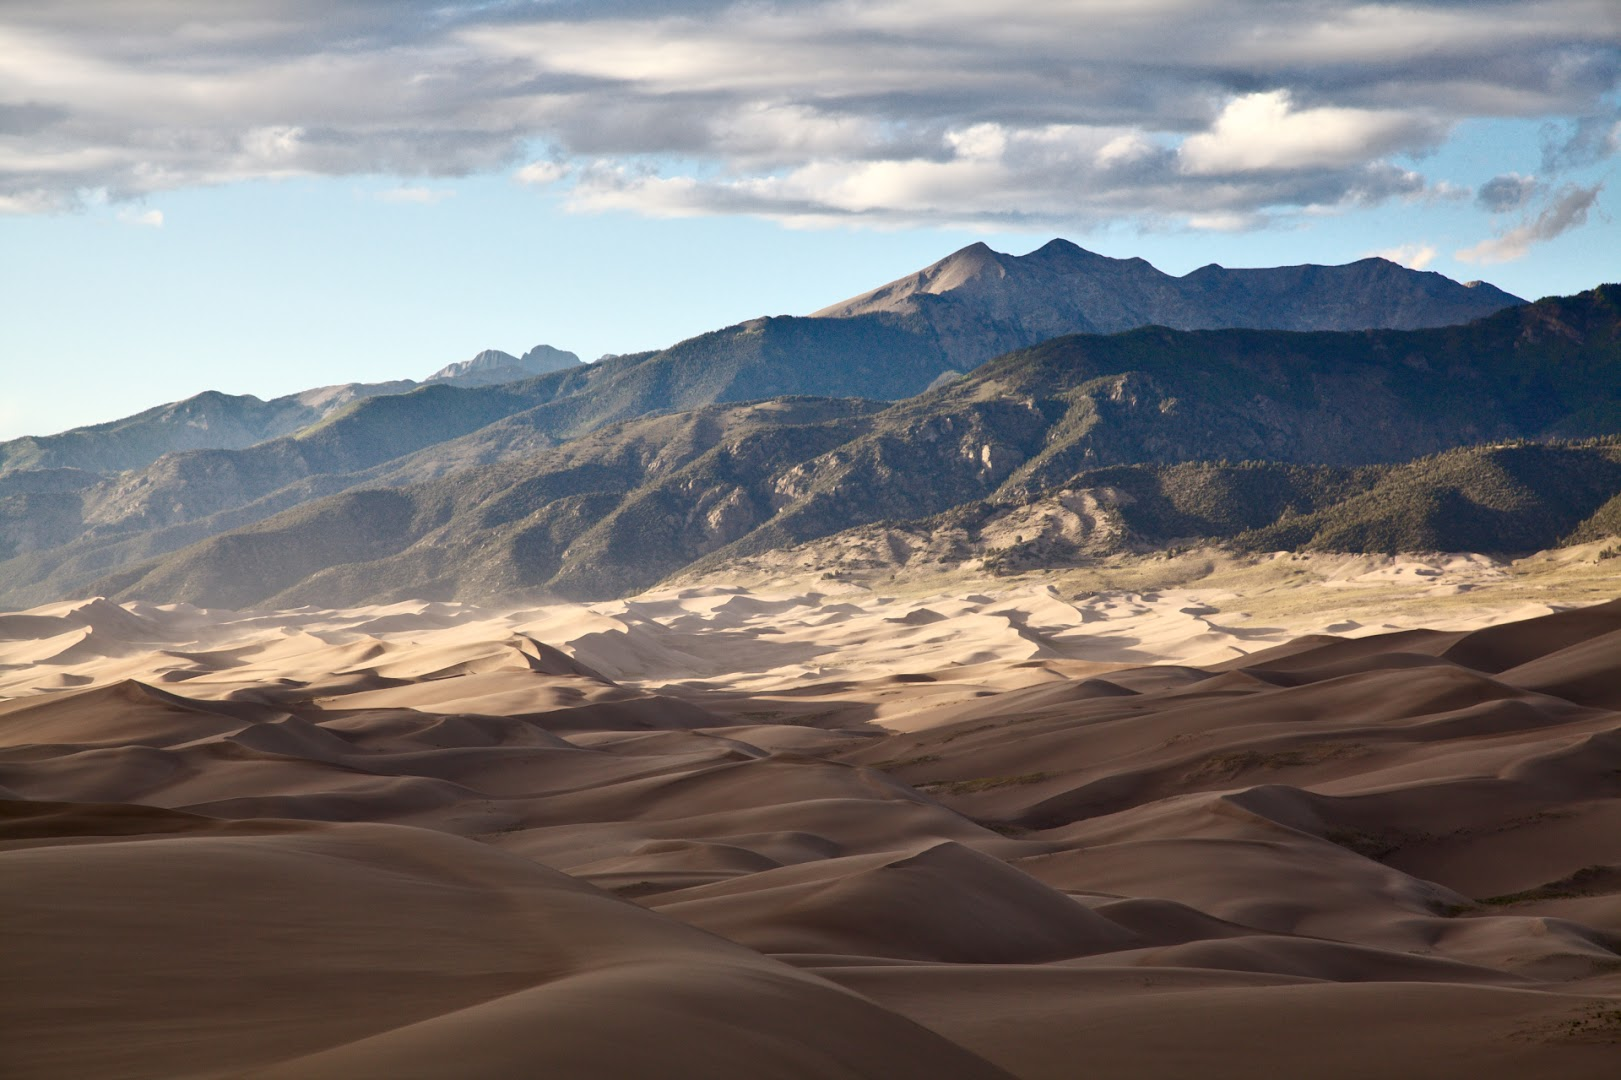 Dune field seen from the above with a backdrop of Sangre de Cristo mountains. Many of the dunes are 200m+ high